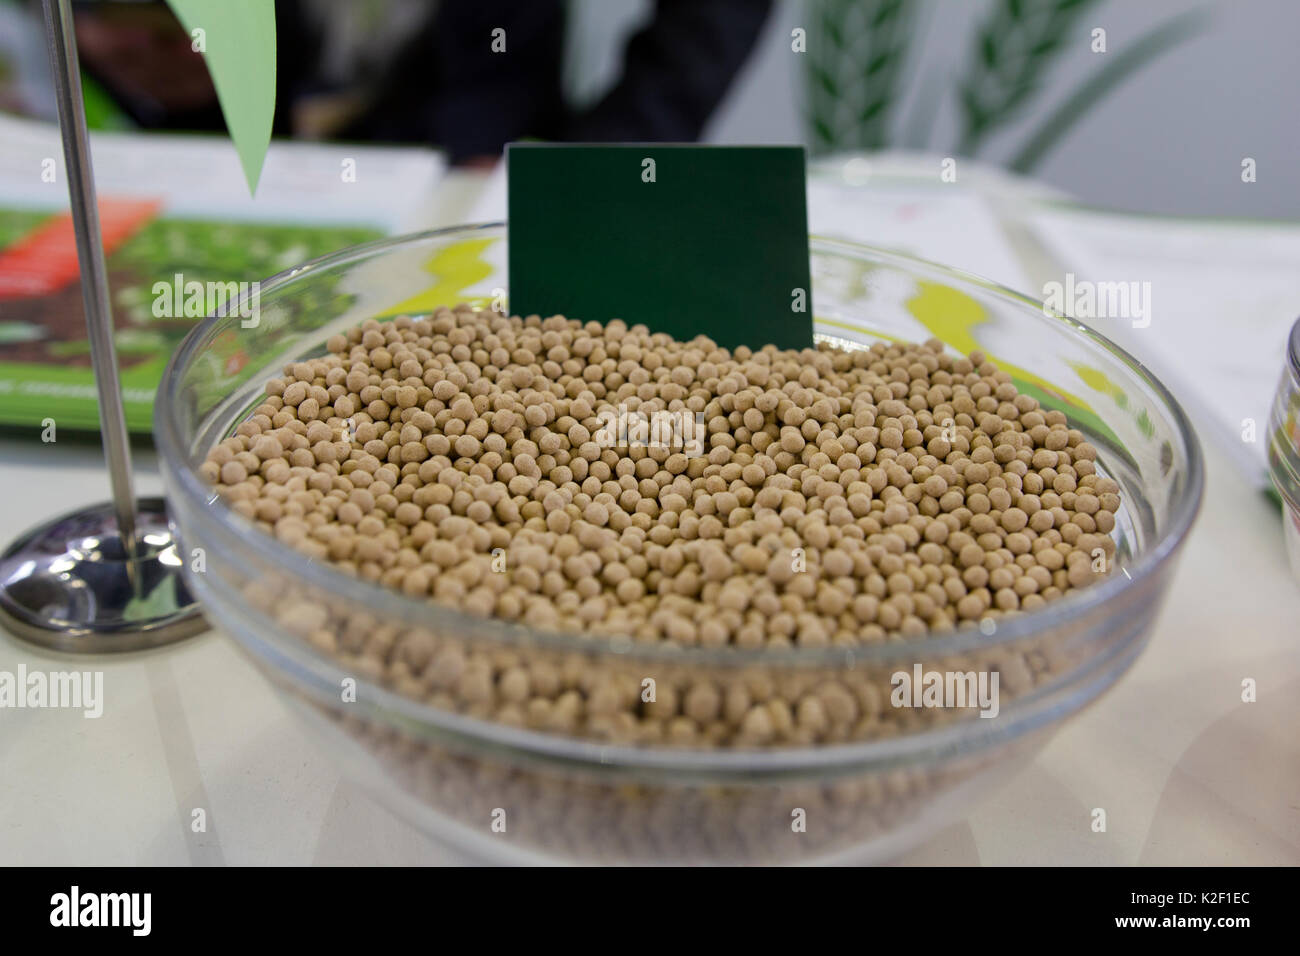 Genetically modified millet in the glass saucer agricultural concept - Stock Image